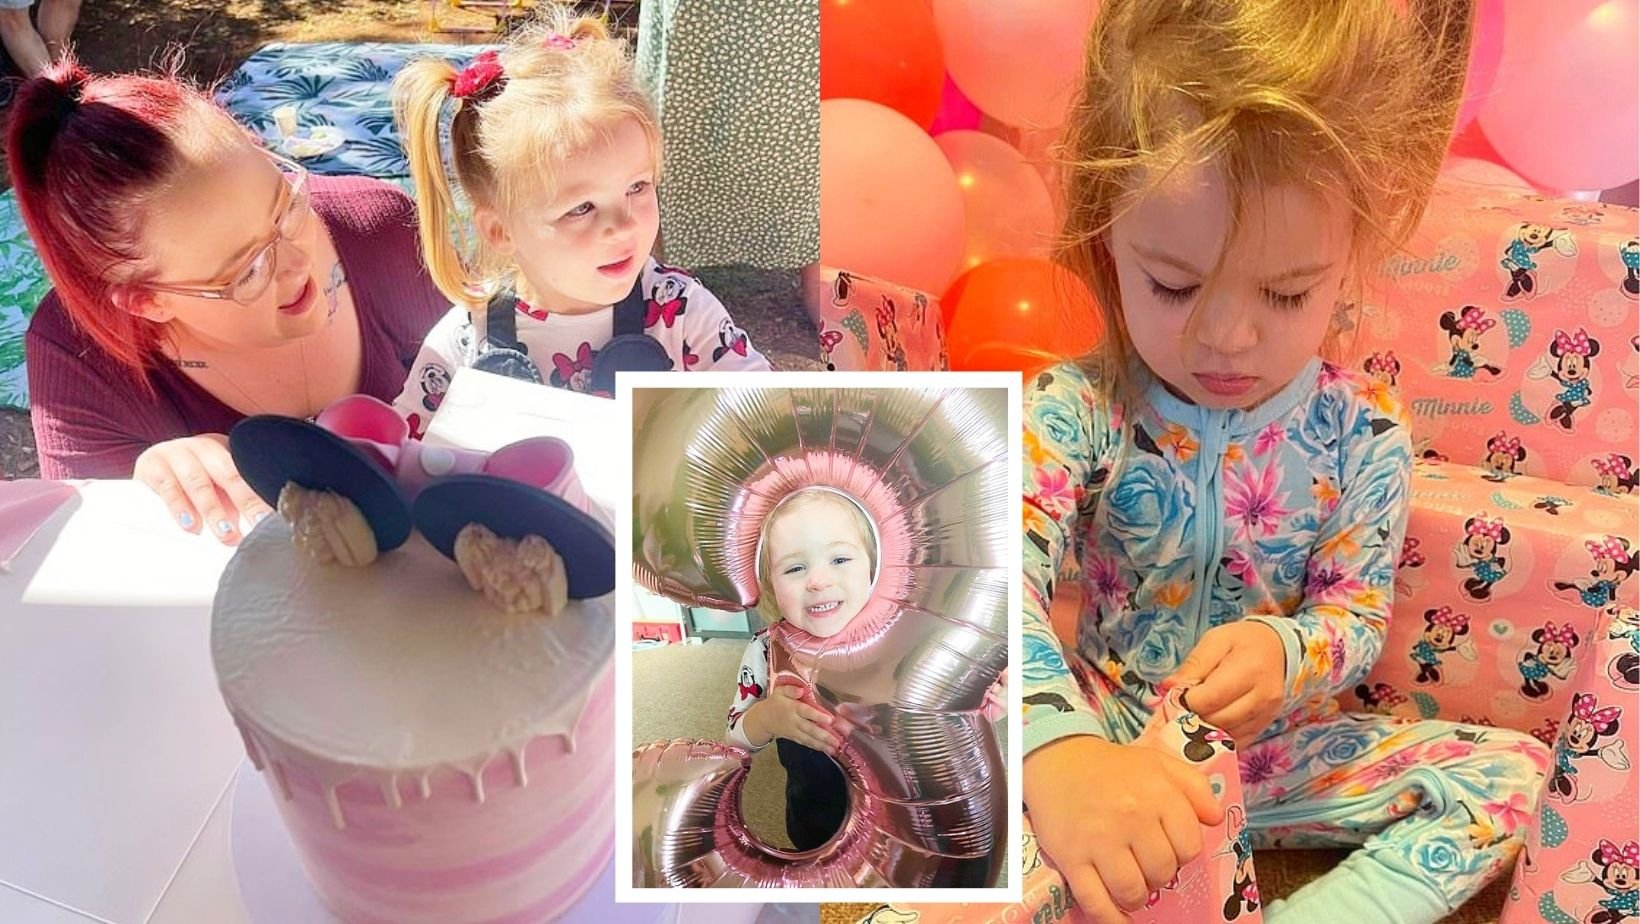 1 52.jpg?resize=1200,630 - Mom Shares How Strangers Saved Her Daughter's 3rd Birthday Party After Invited Friends Cancelled The Last Minute